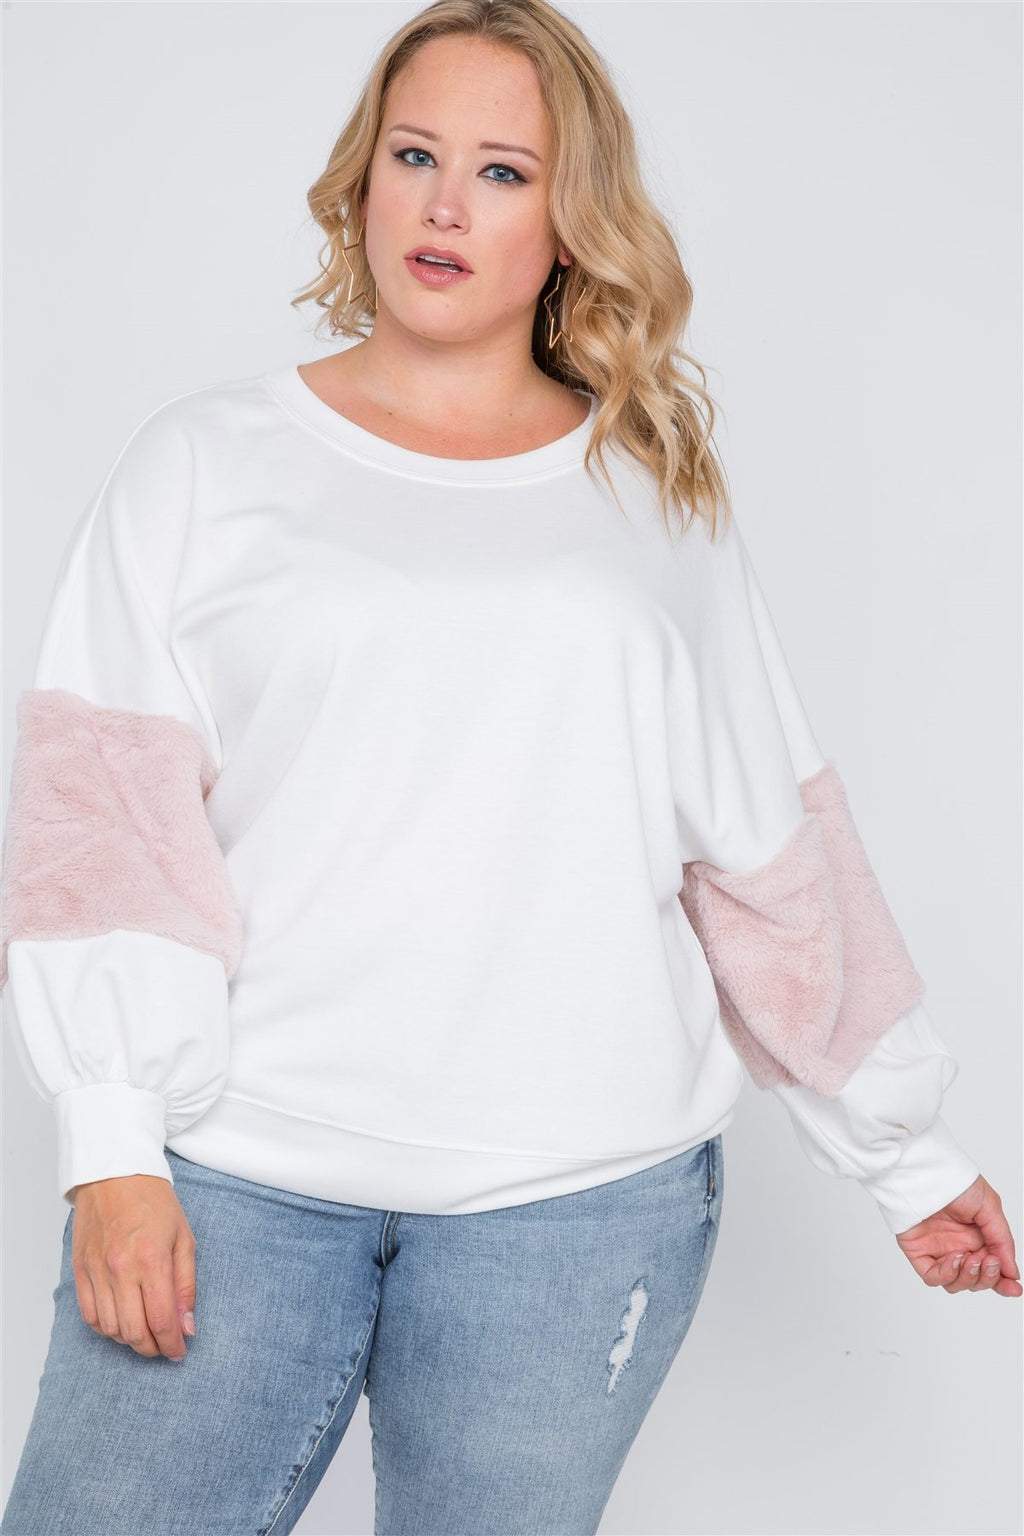 Plus Size Faux Fur Pink Sleeves Sweater - Miranda's Paparazzi Style